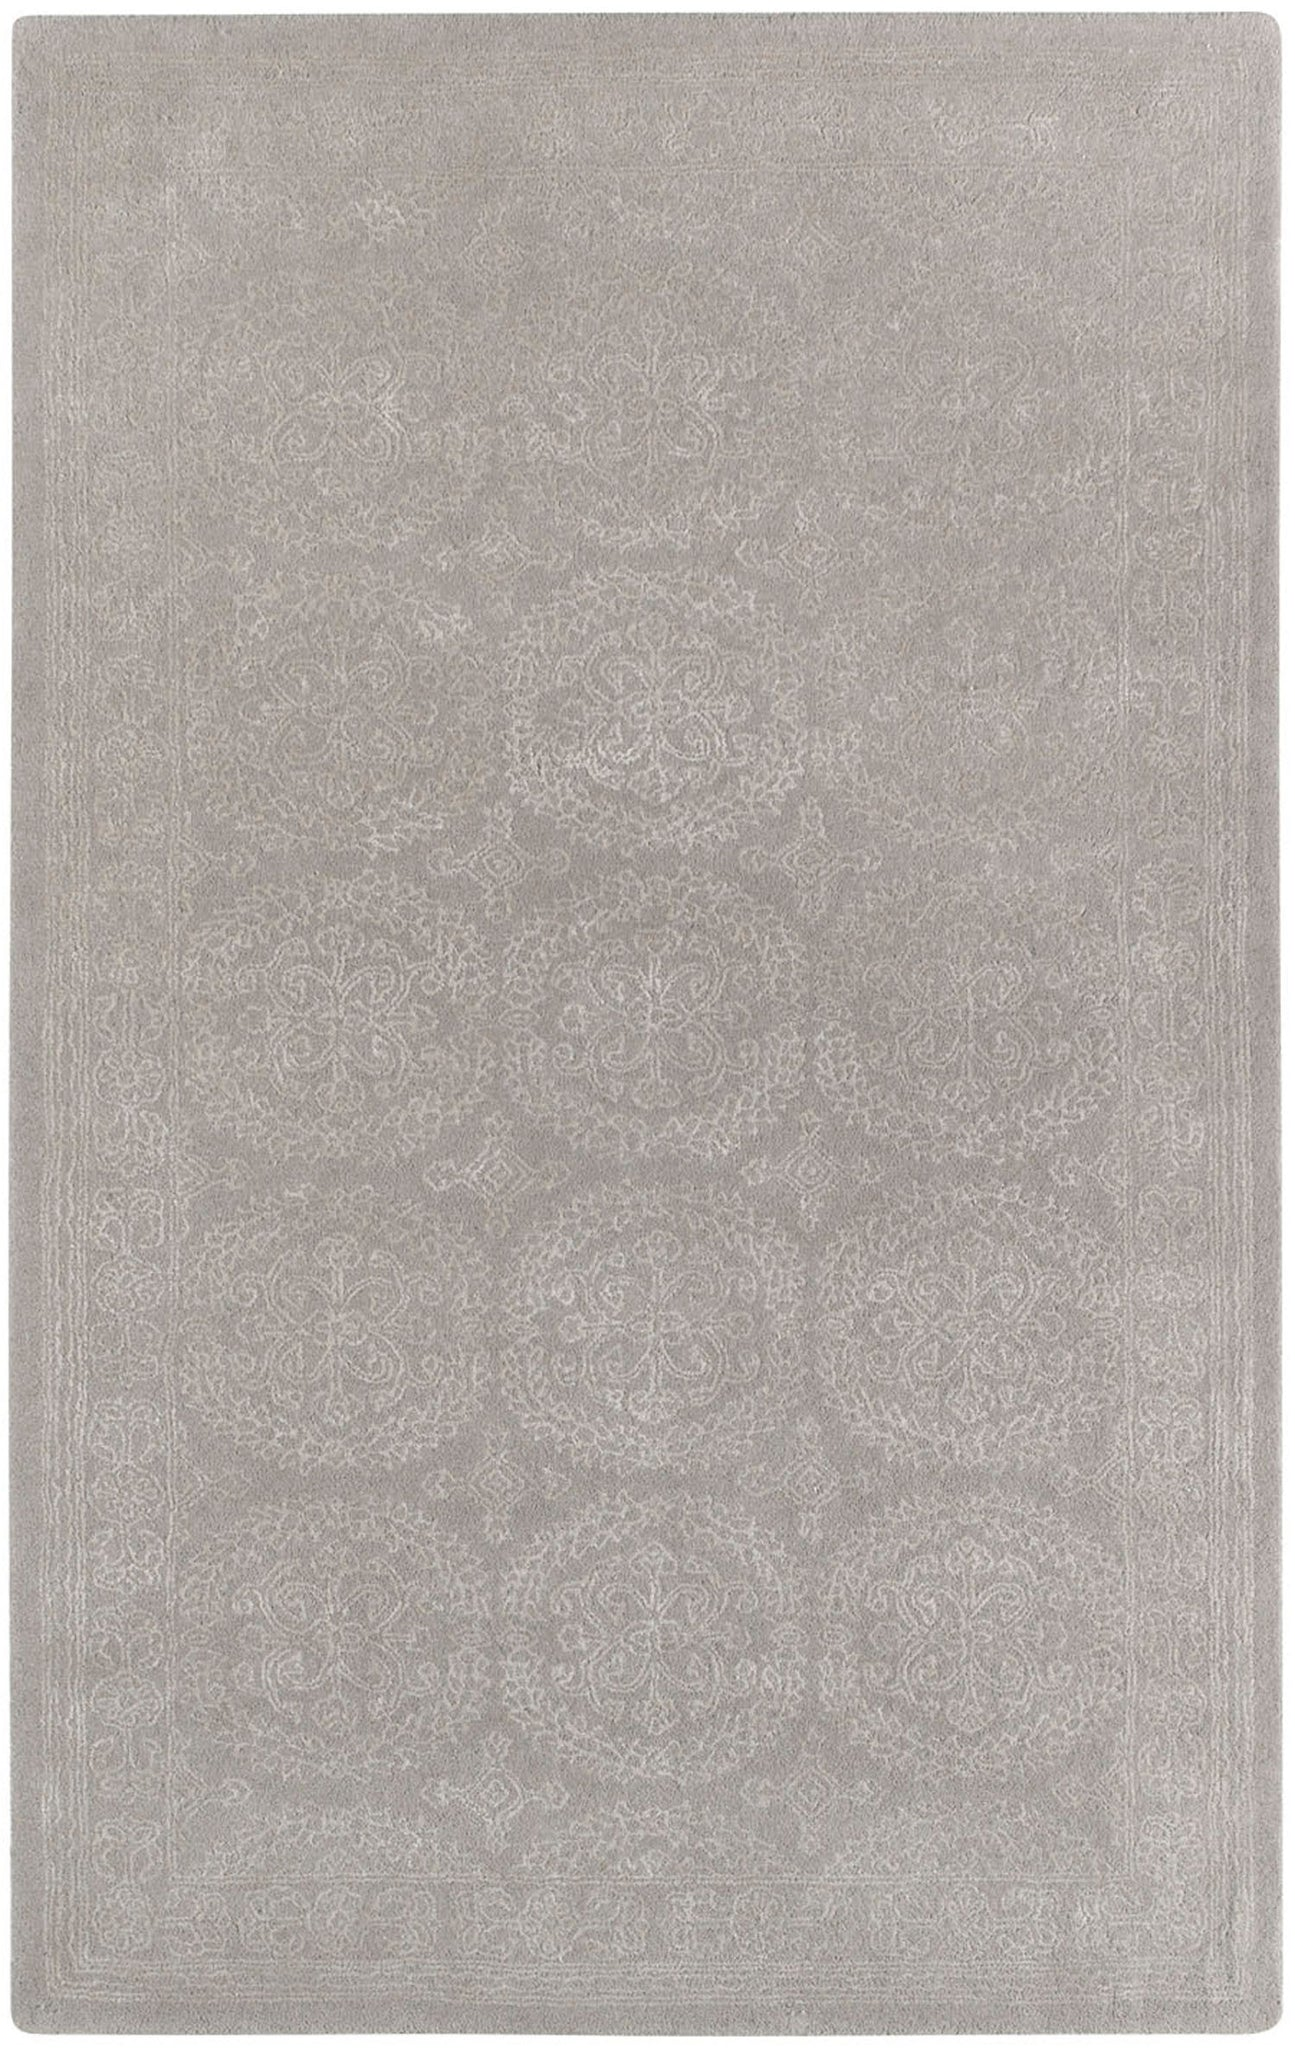 Capel Interlace 9243 Light Beige 650 Area Rug main image